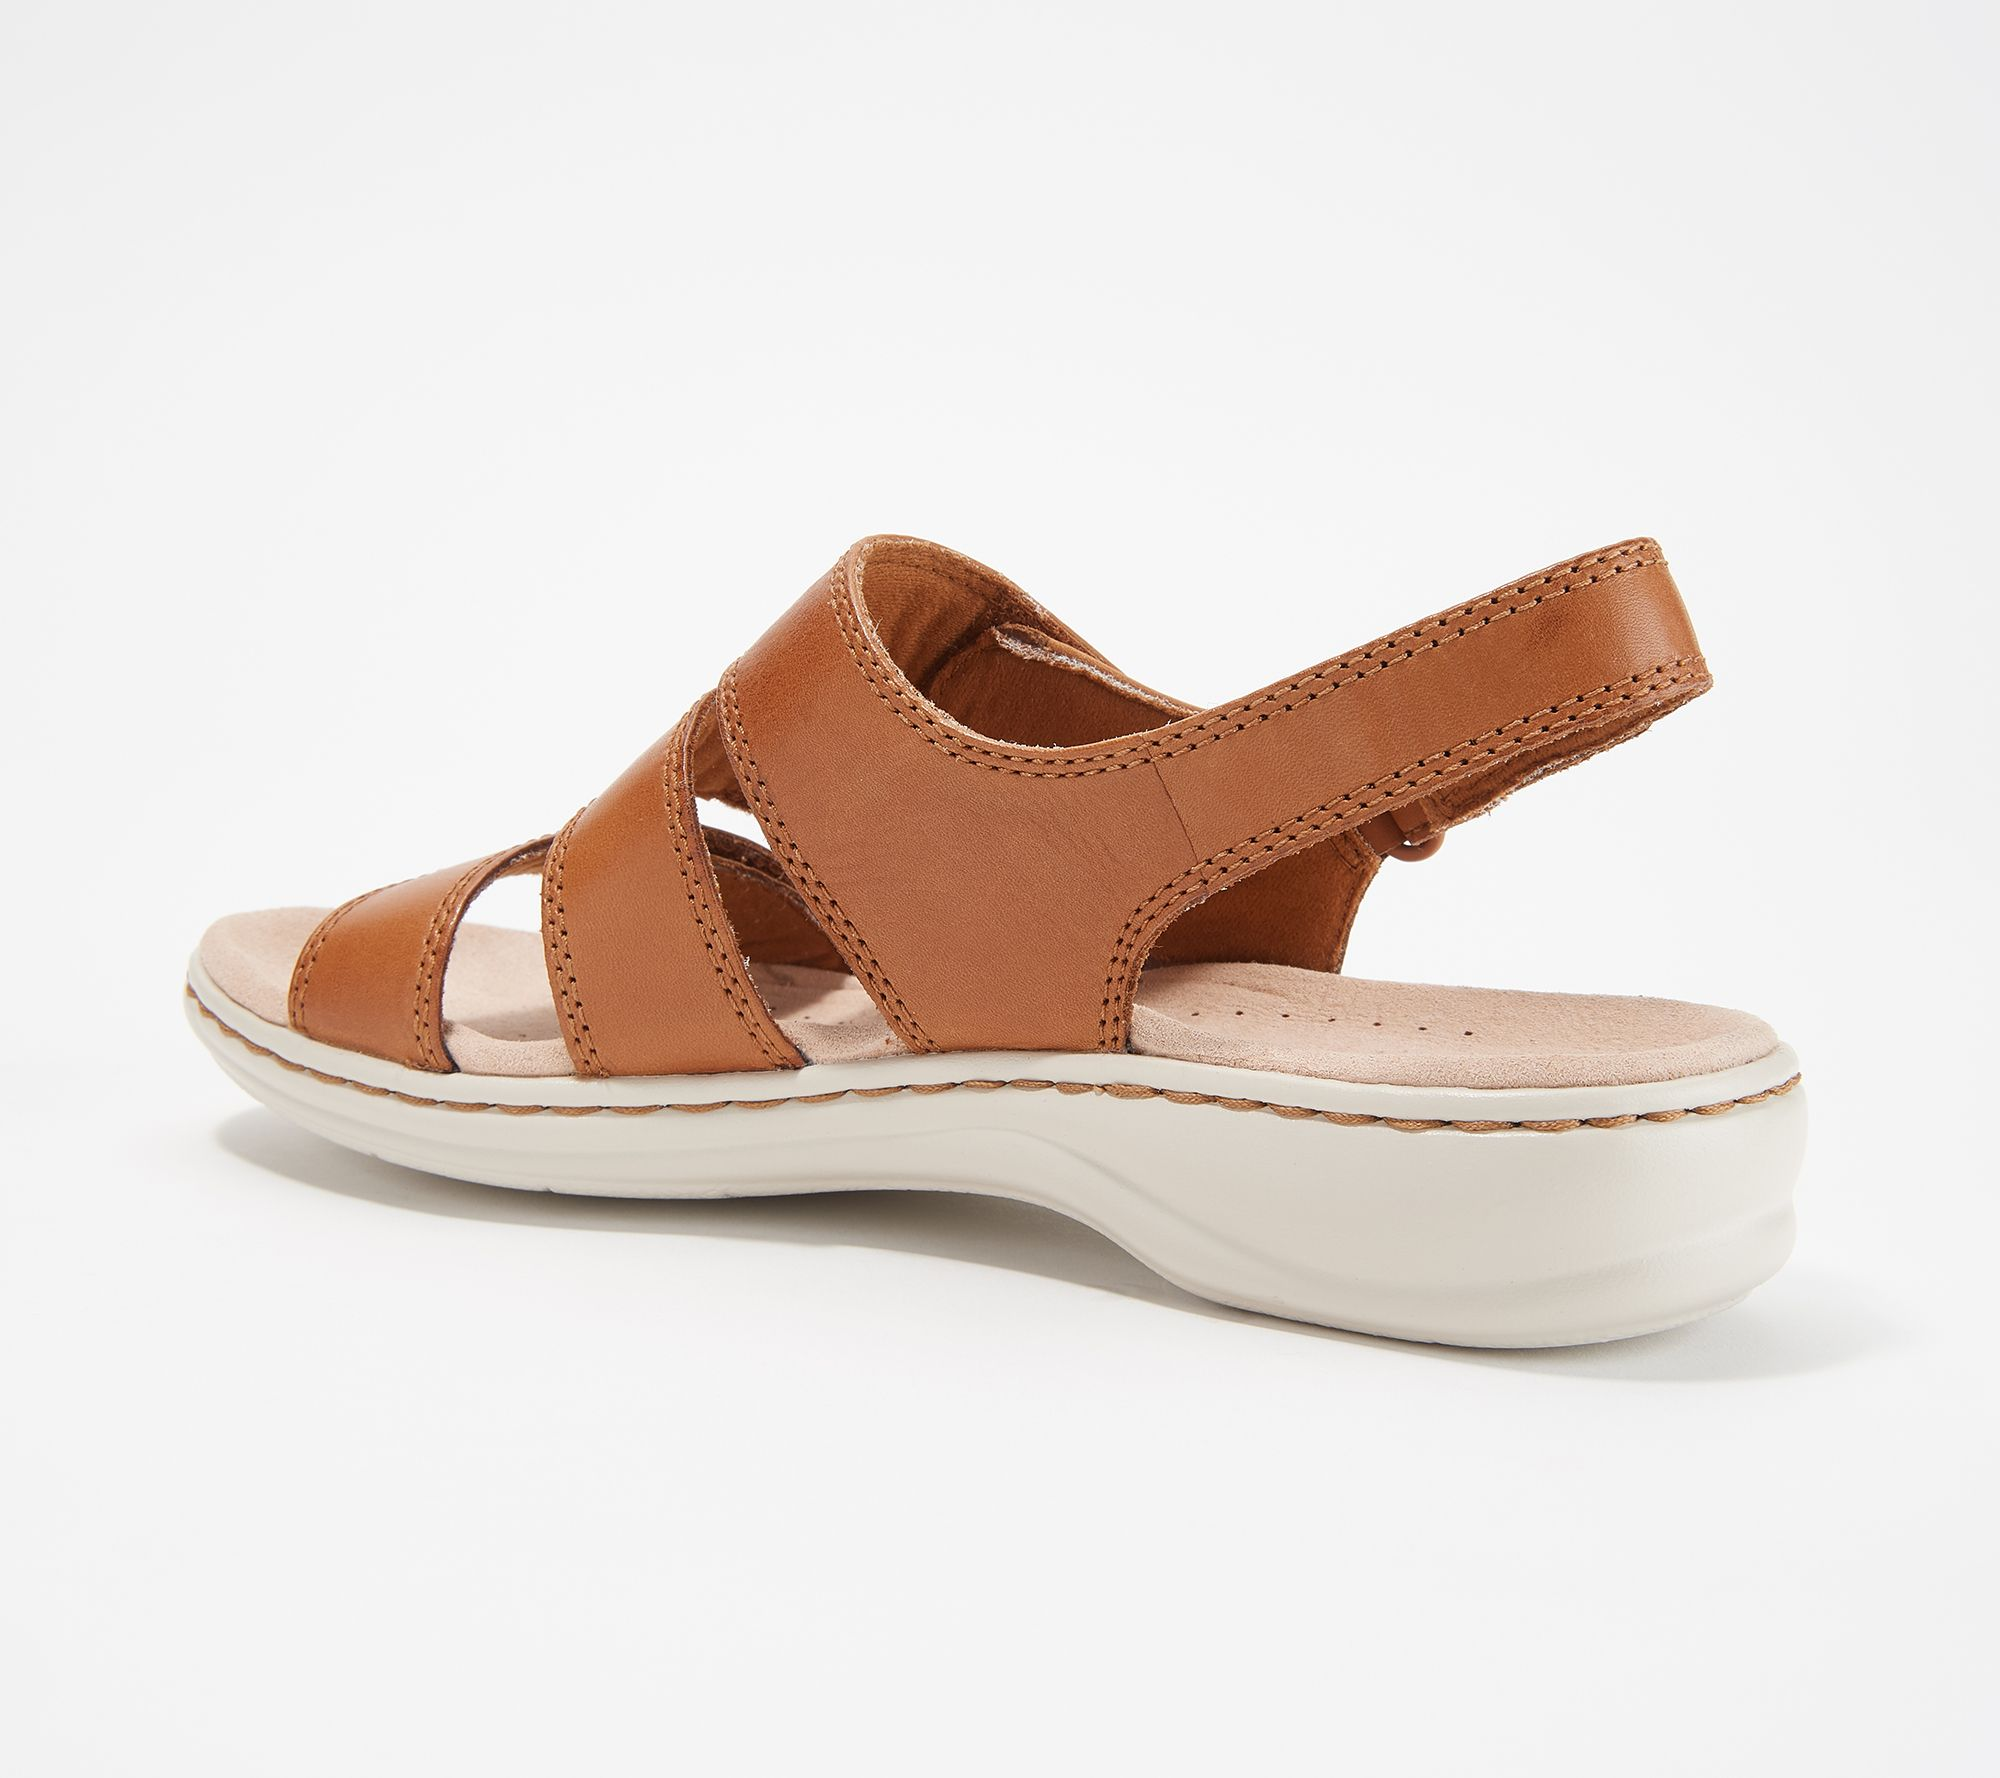 1476800dd3e Clarks Collection Leather Sandals - Leisa Melinda - Page 1 — QVC.com